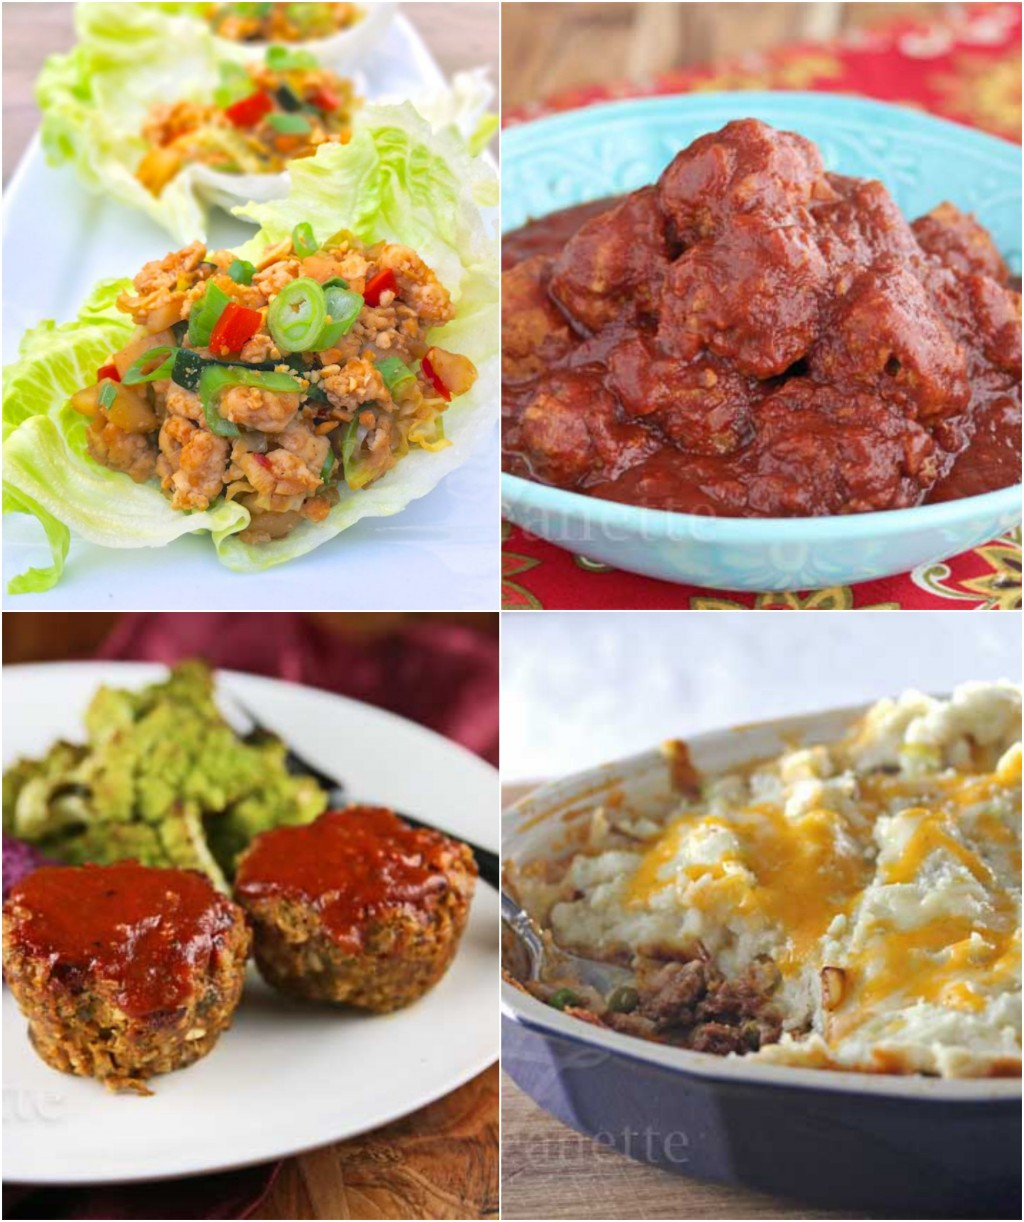 Recipes using Ground Chicken